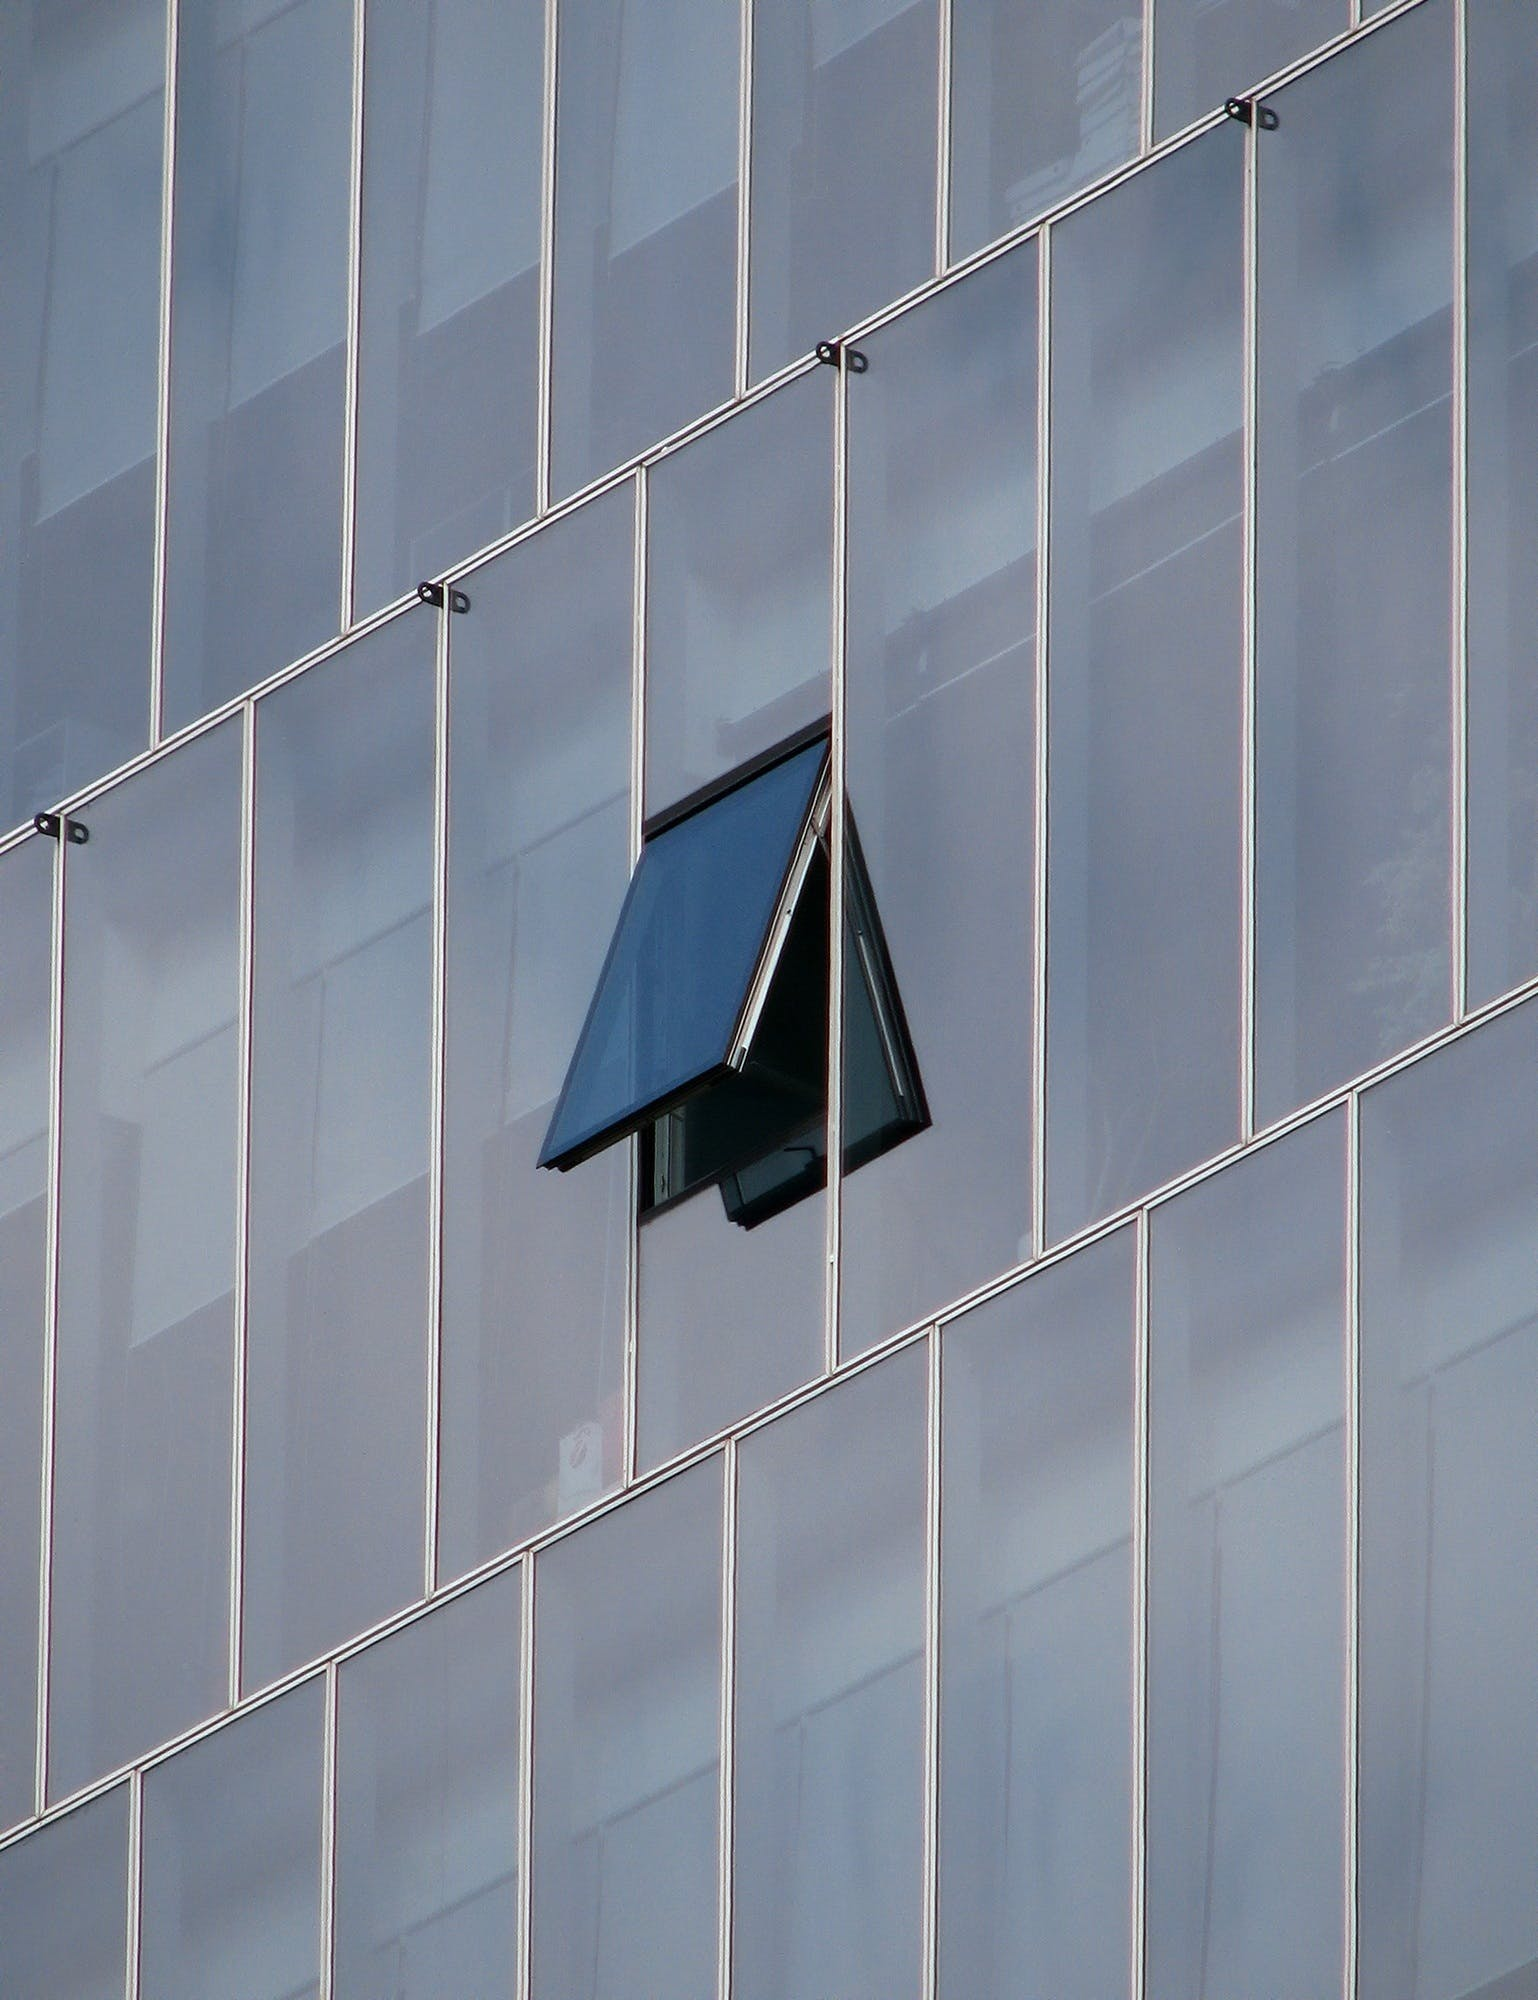 One Open Window on Laminated Glass Building